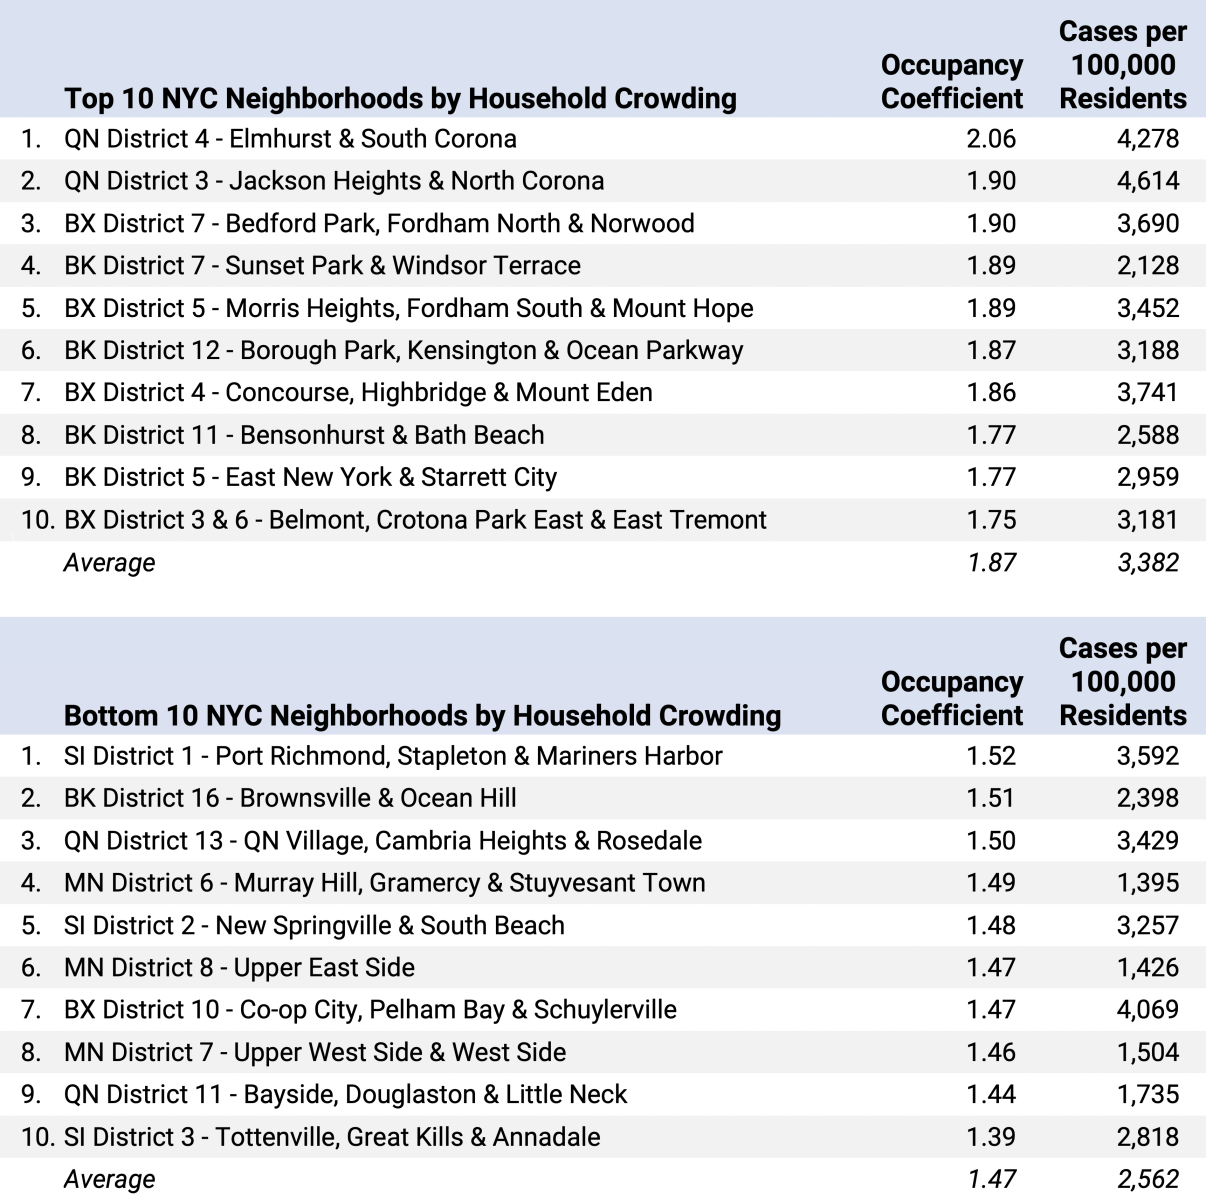 Table 2. Top and Bottom 10 NYC Neighborhoods by Household Crowding